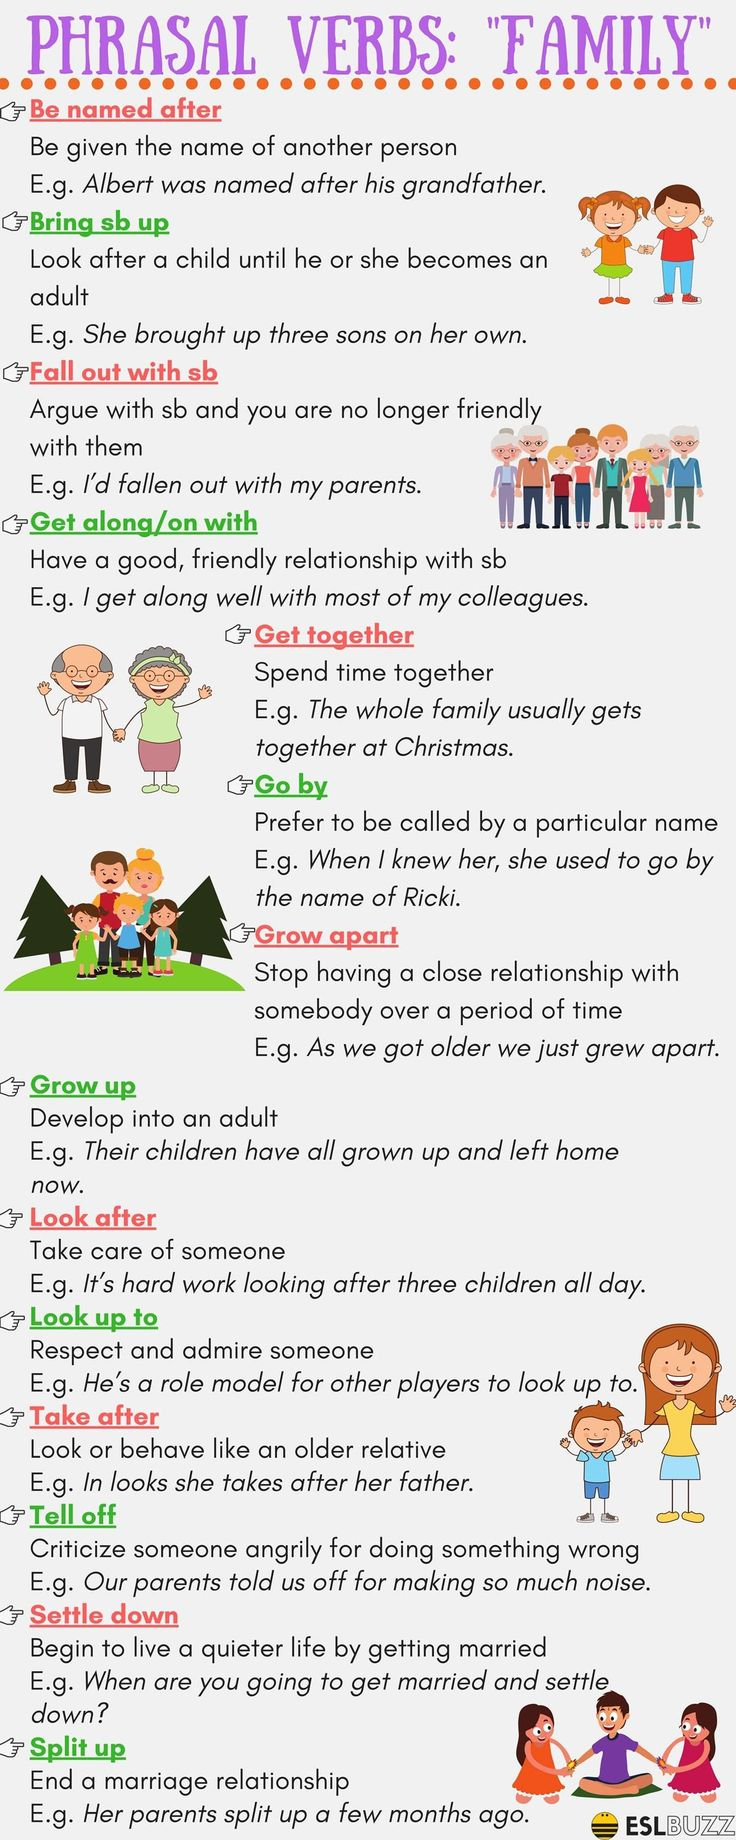 Useful phrasal verbs related to family life...